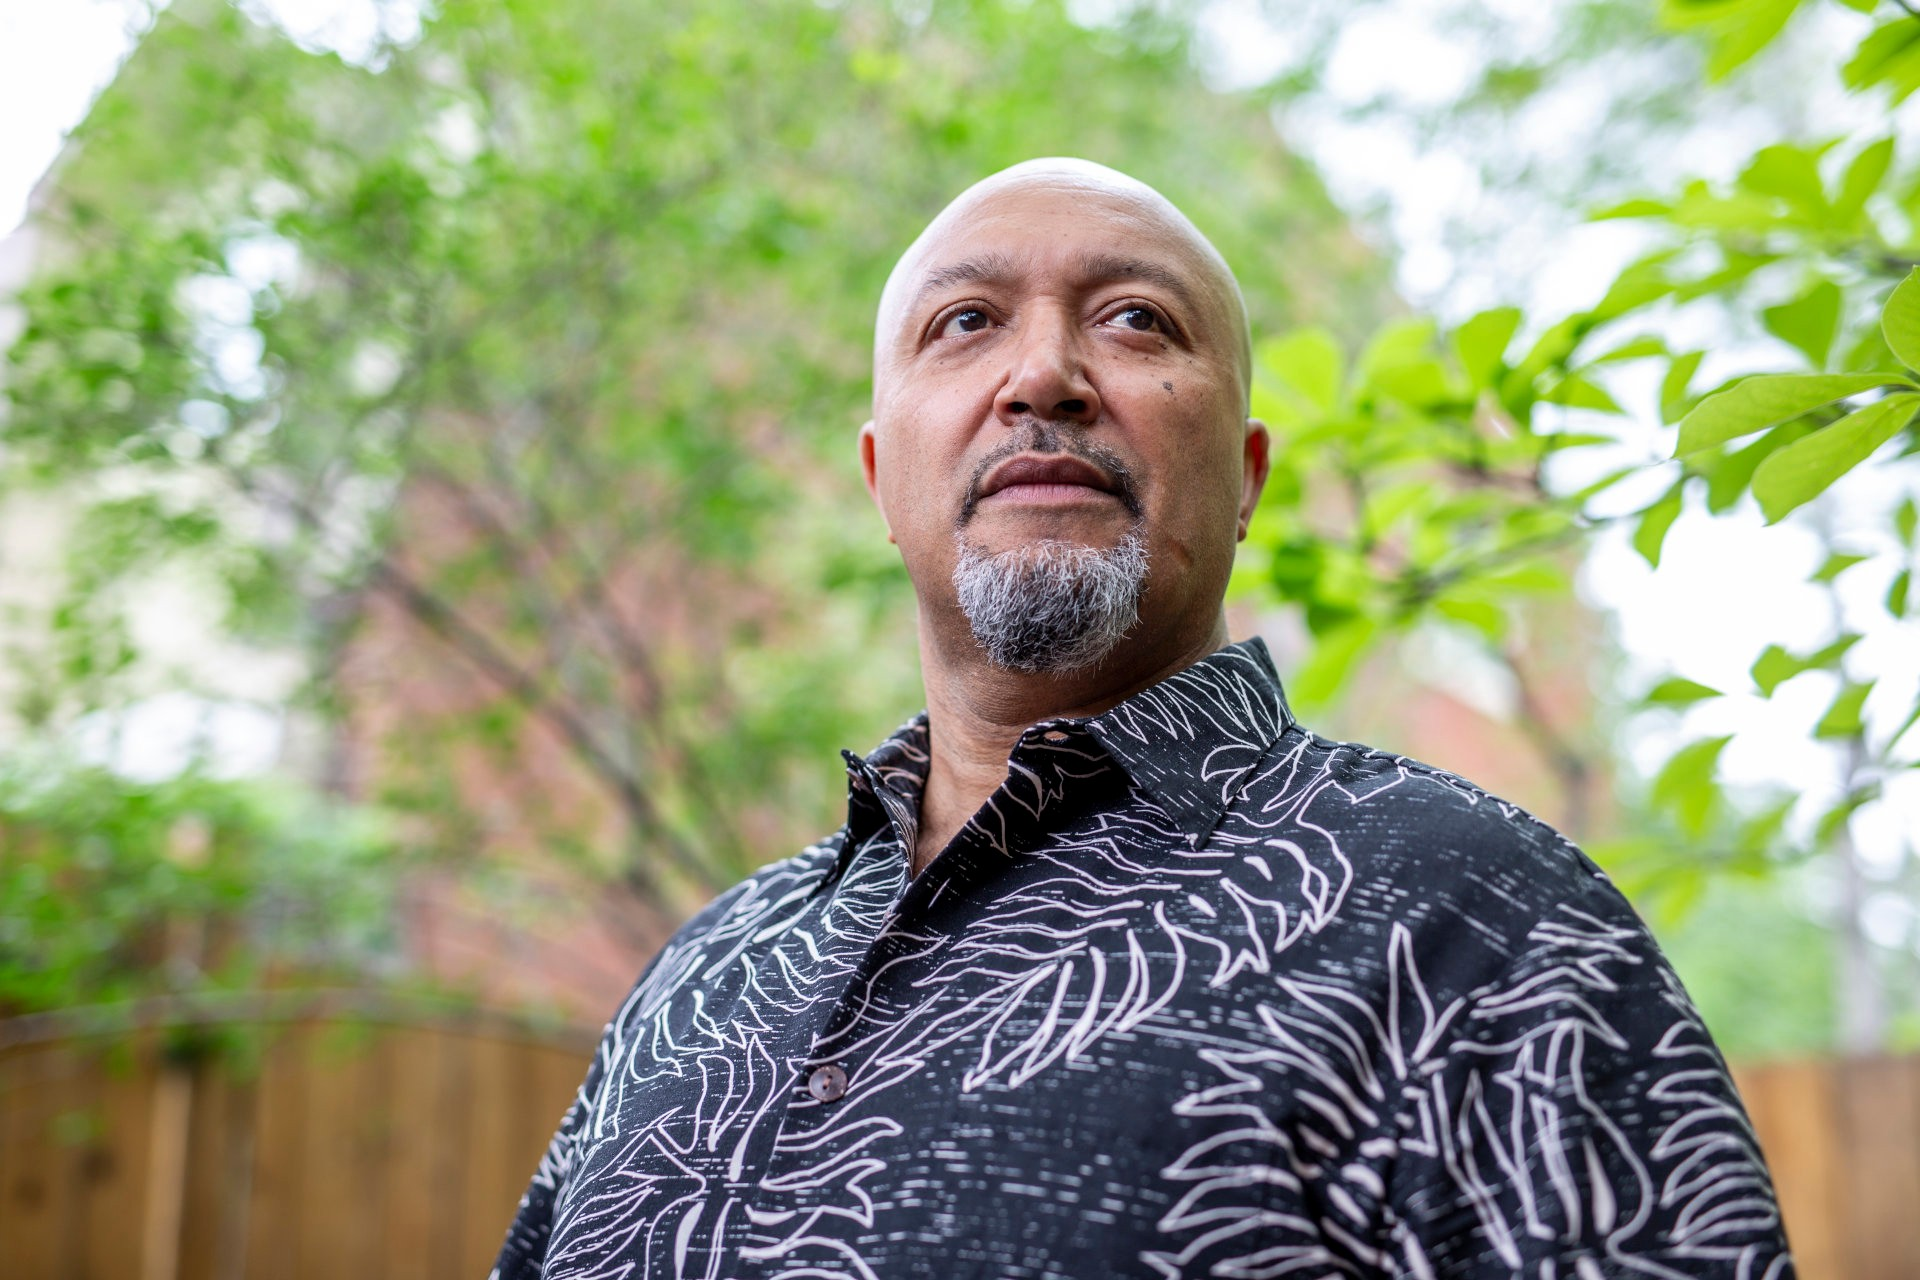 Professor Jason Edward Lewis